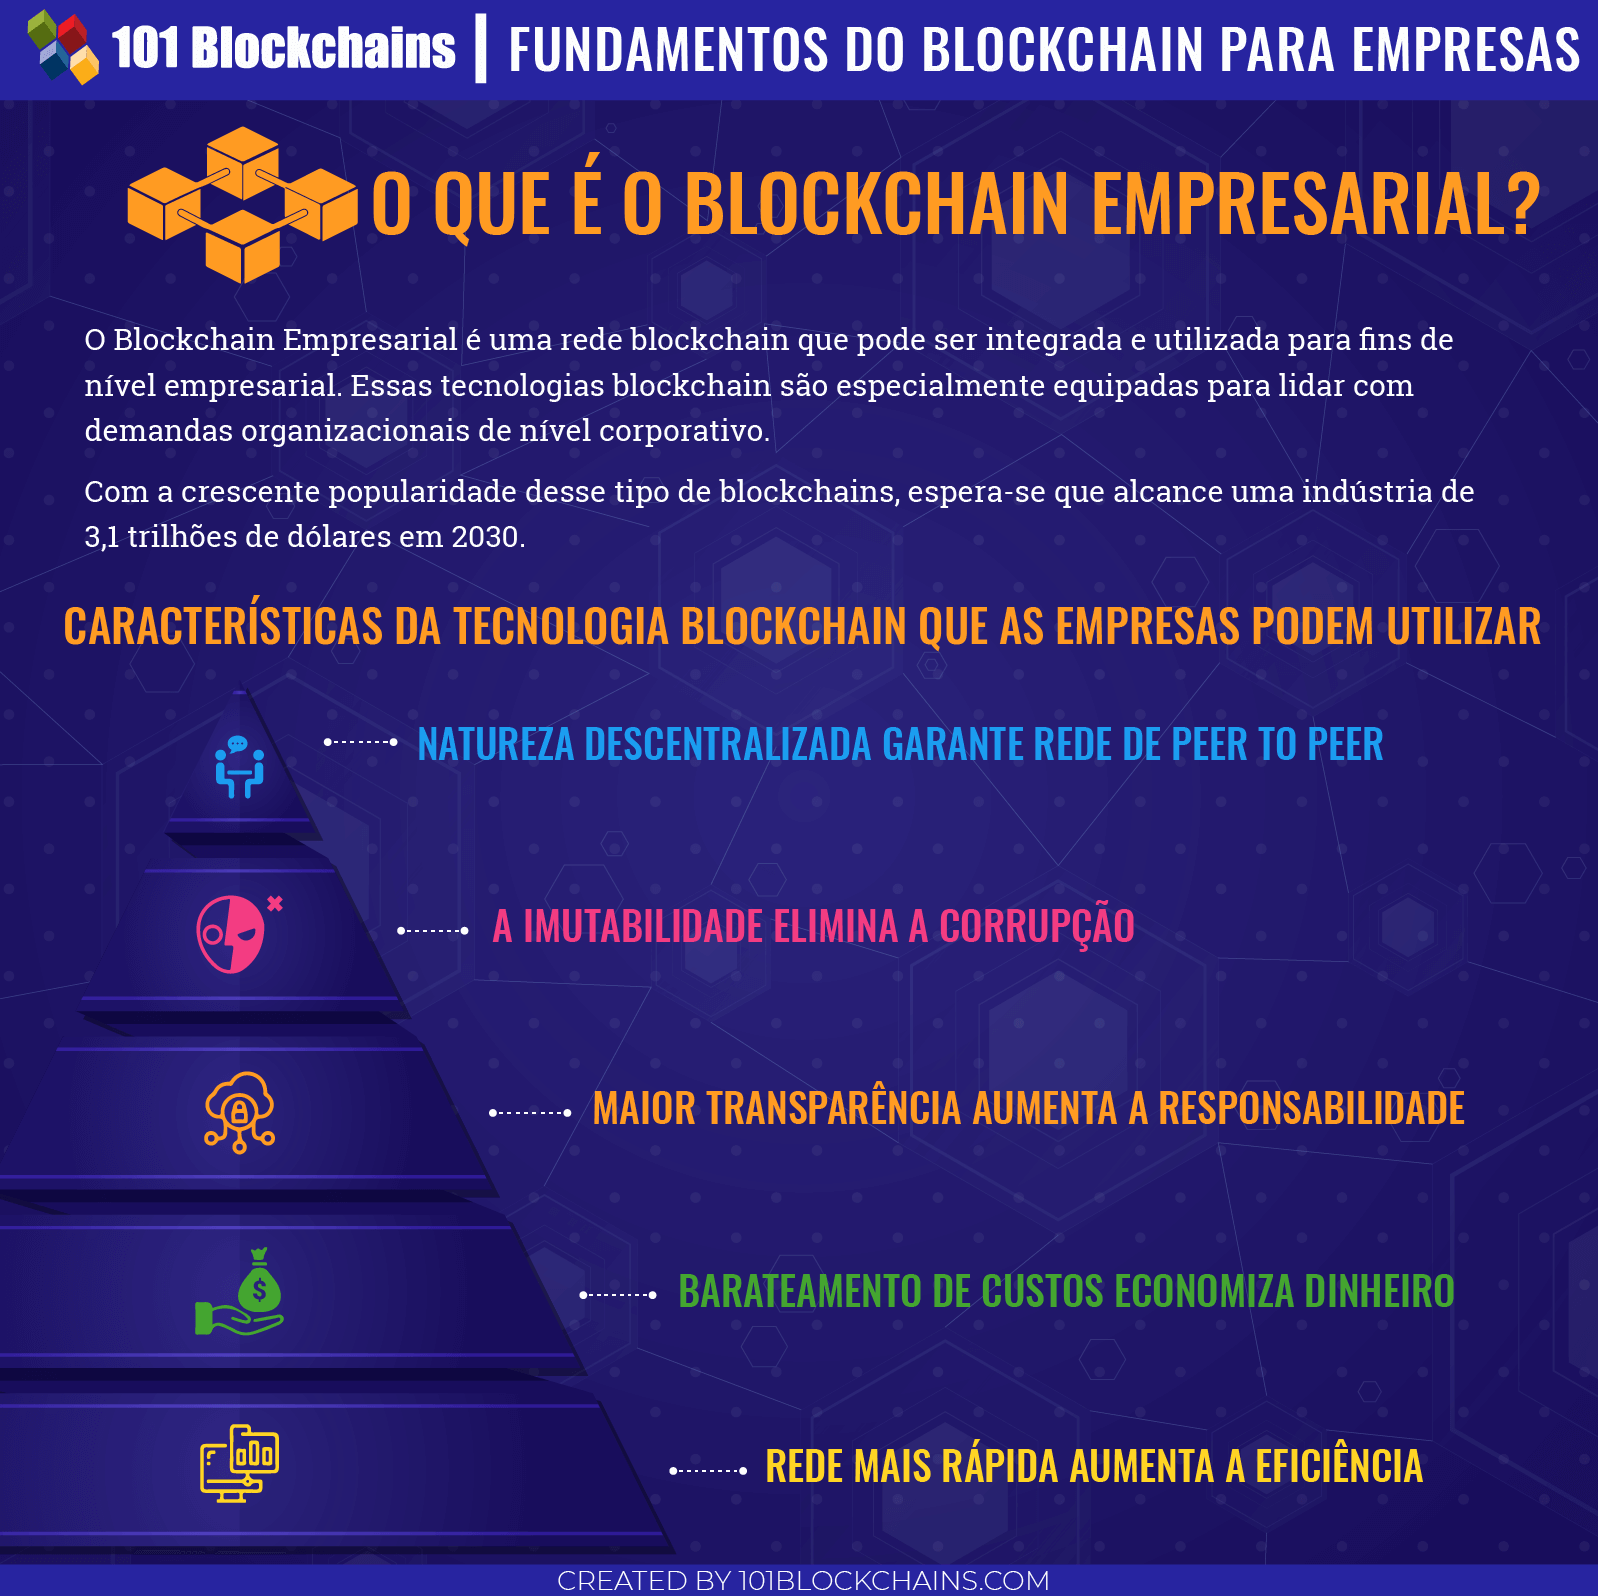 Fundamentos do Blockchain para Empresas